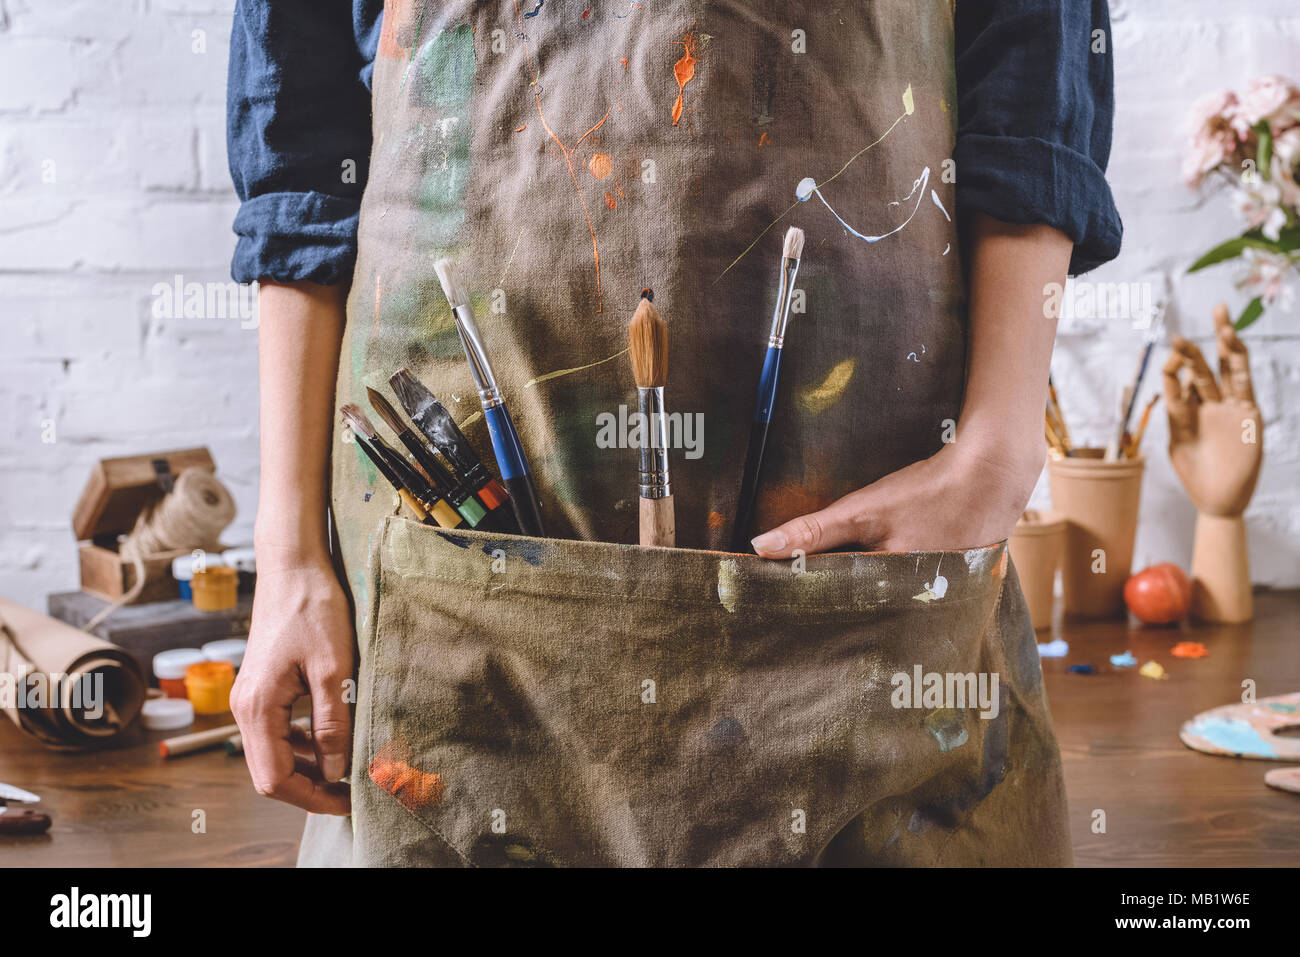 cropped image of artist with brushes and hand in apron pocket - Stock Image